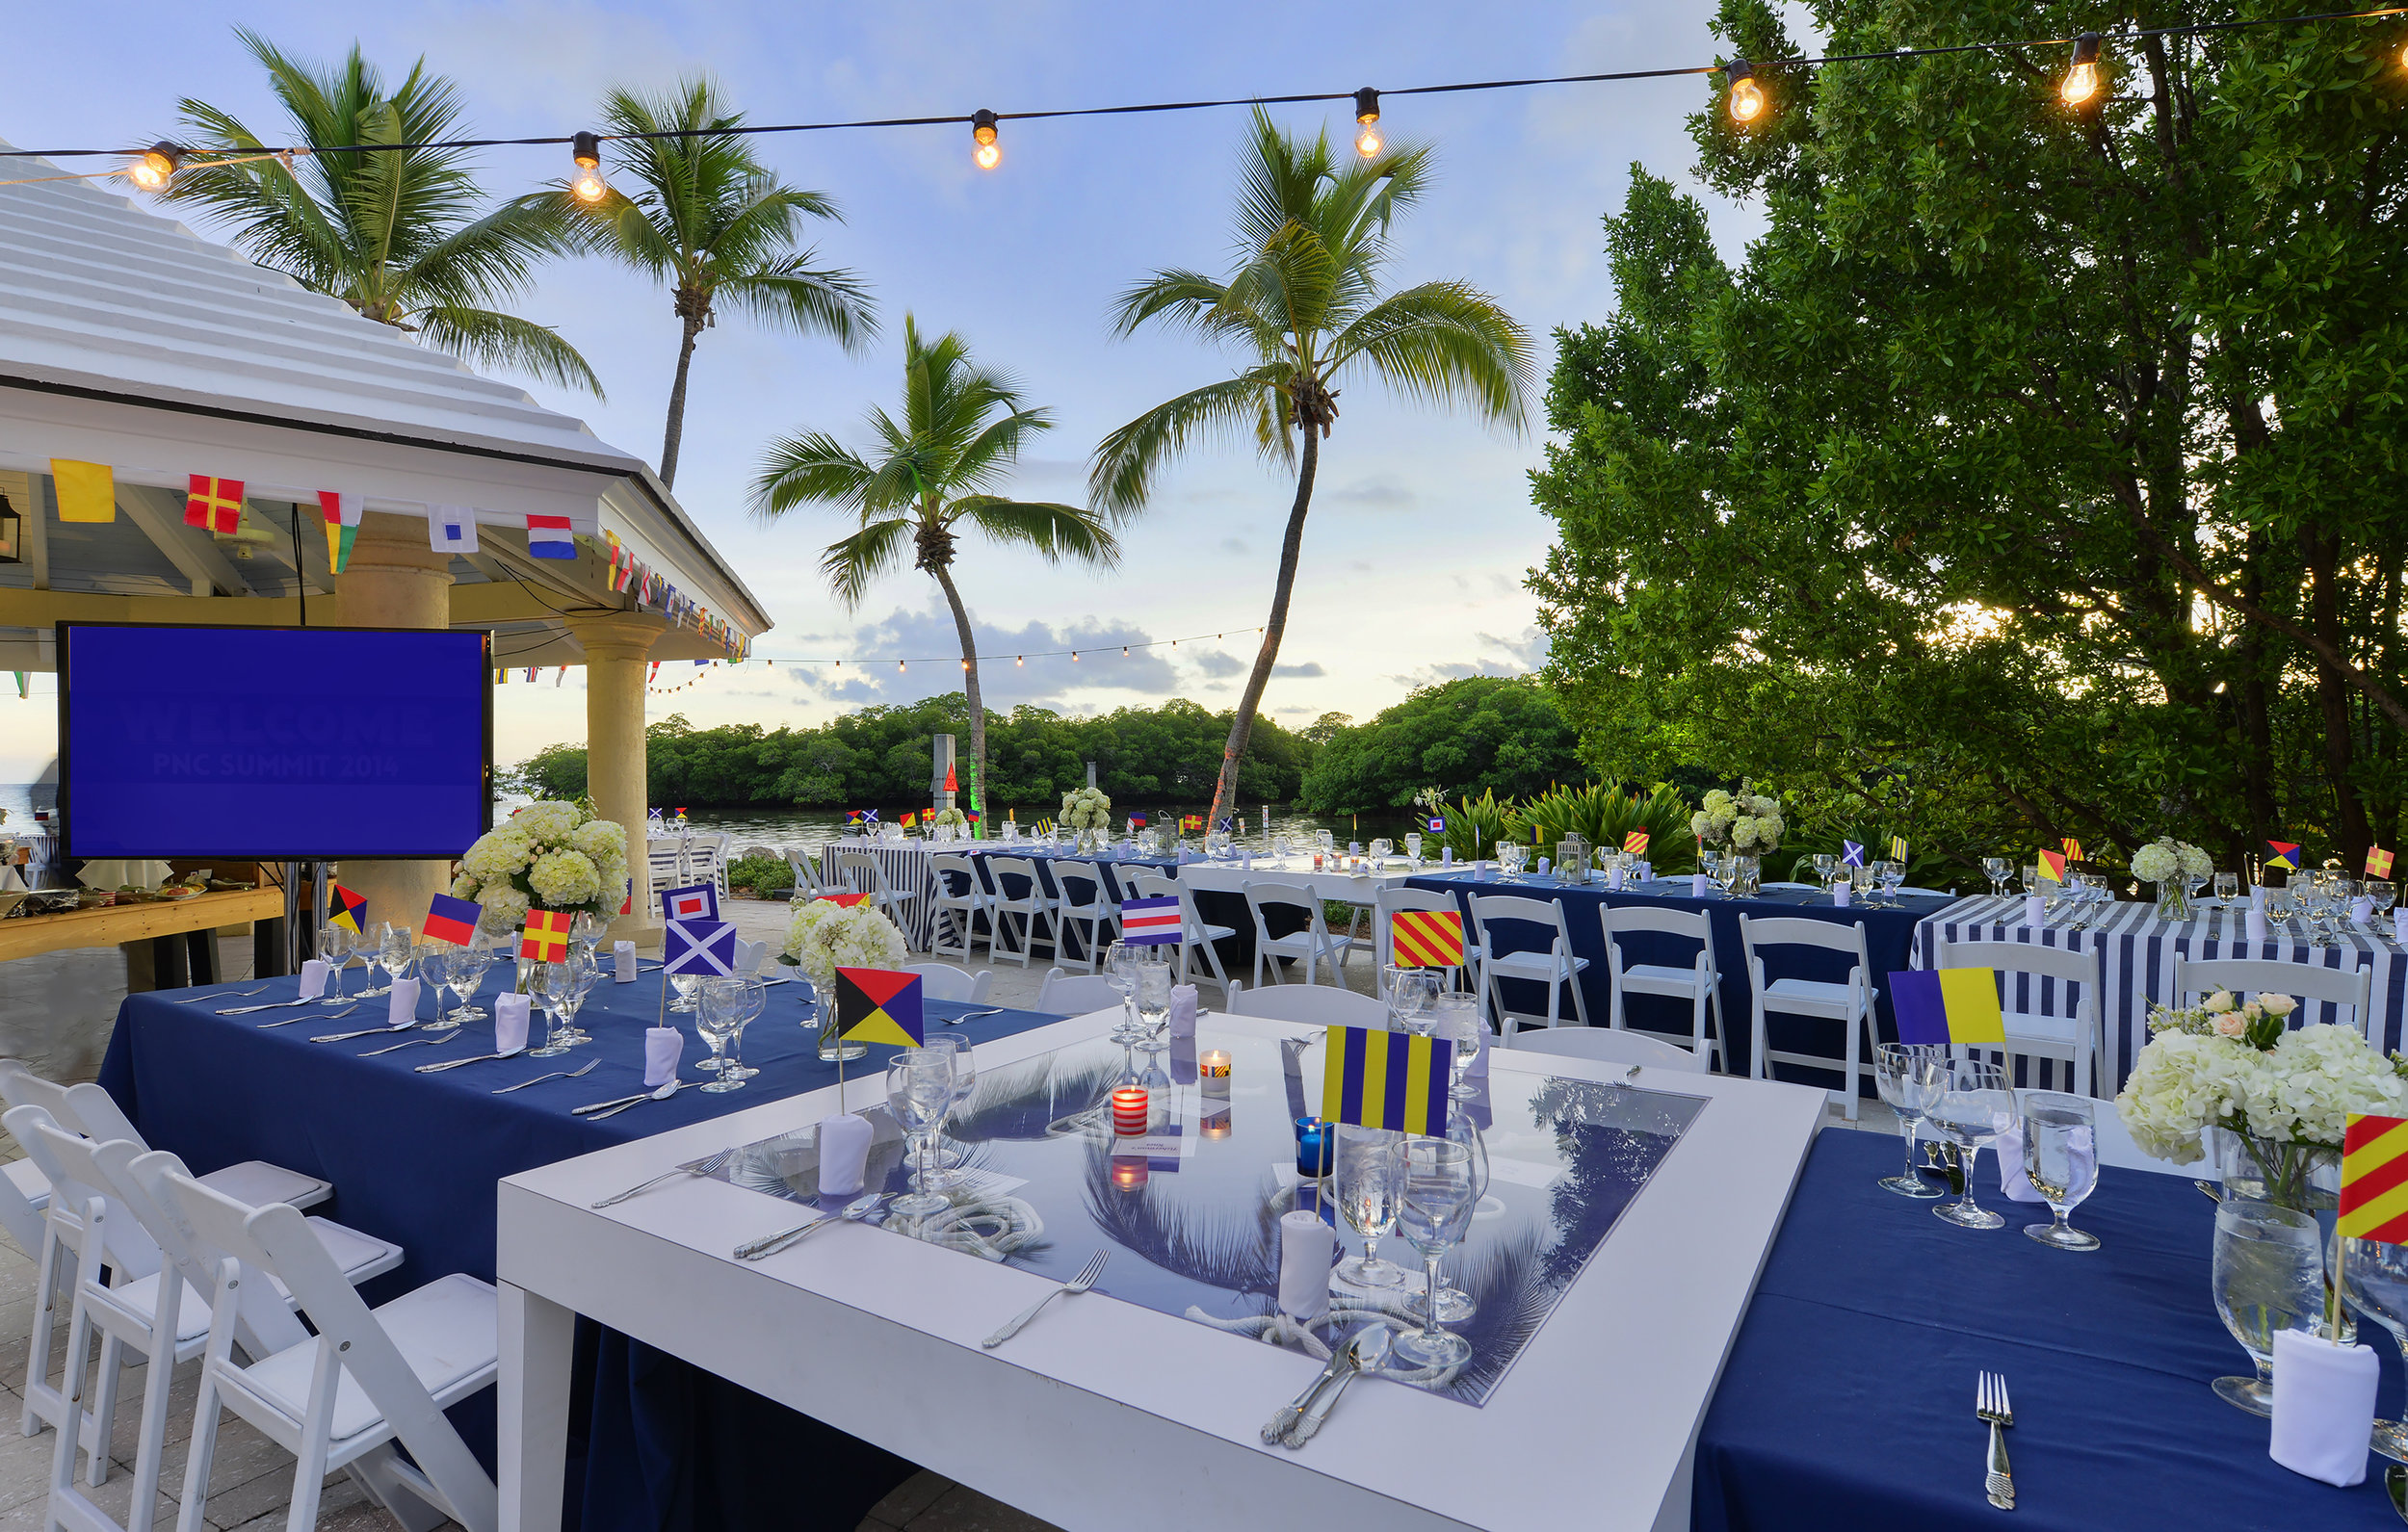 nautical table settings and palm trees